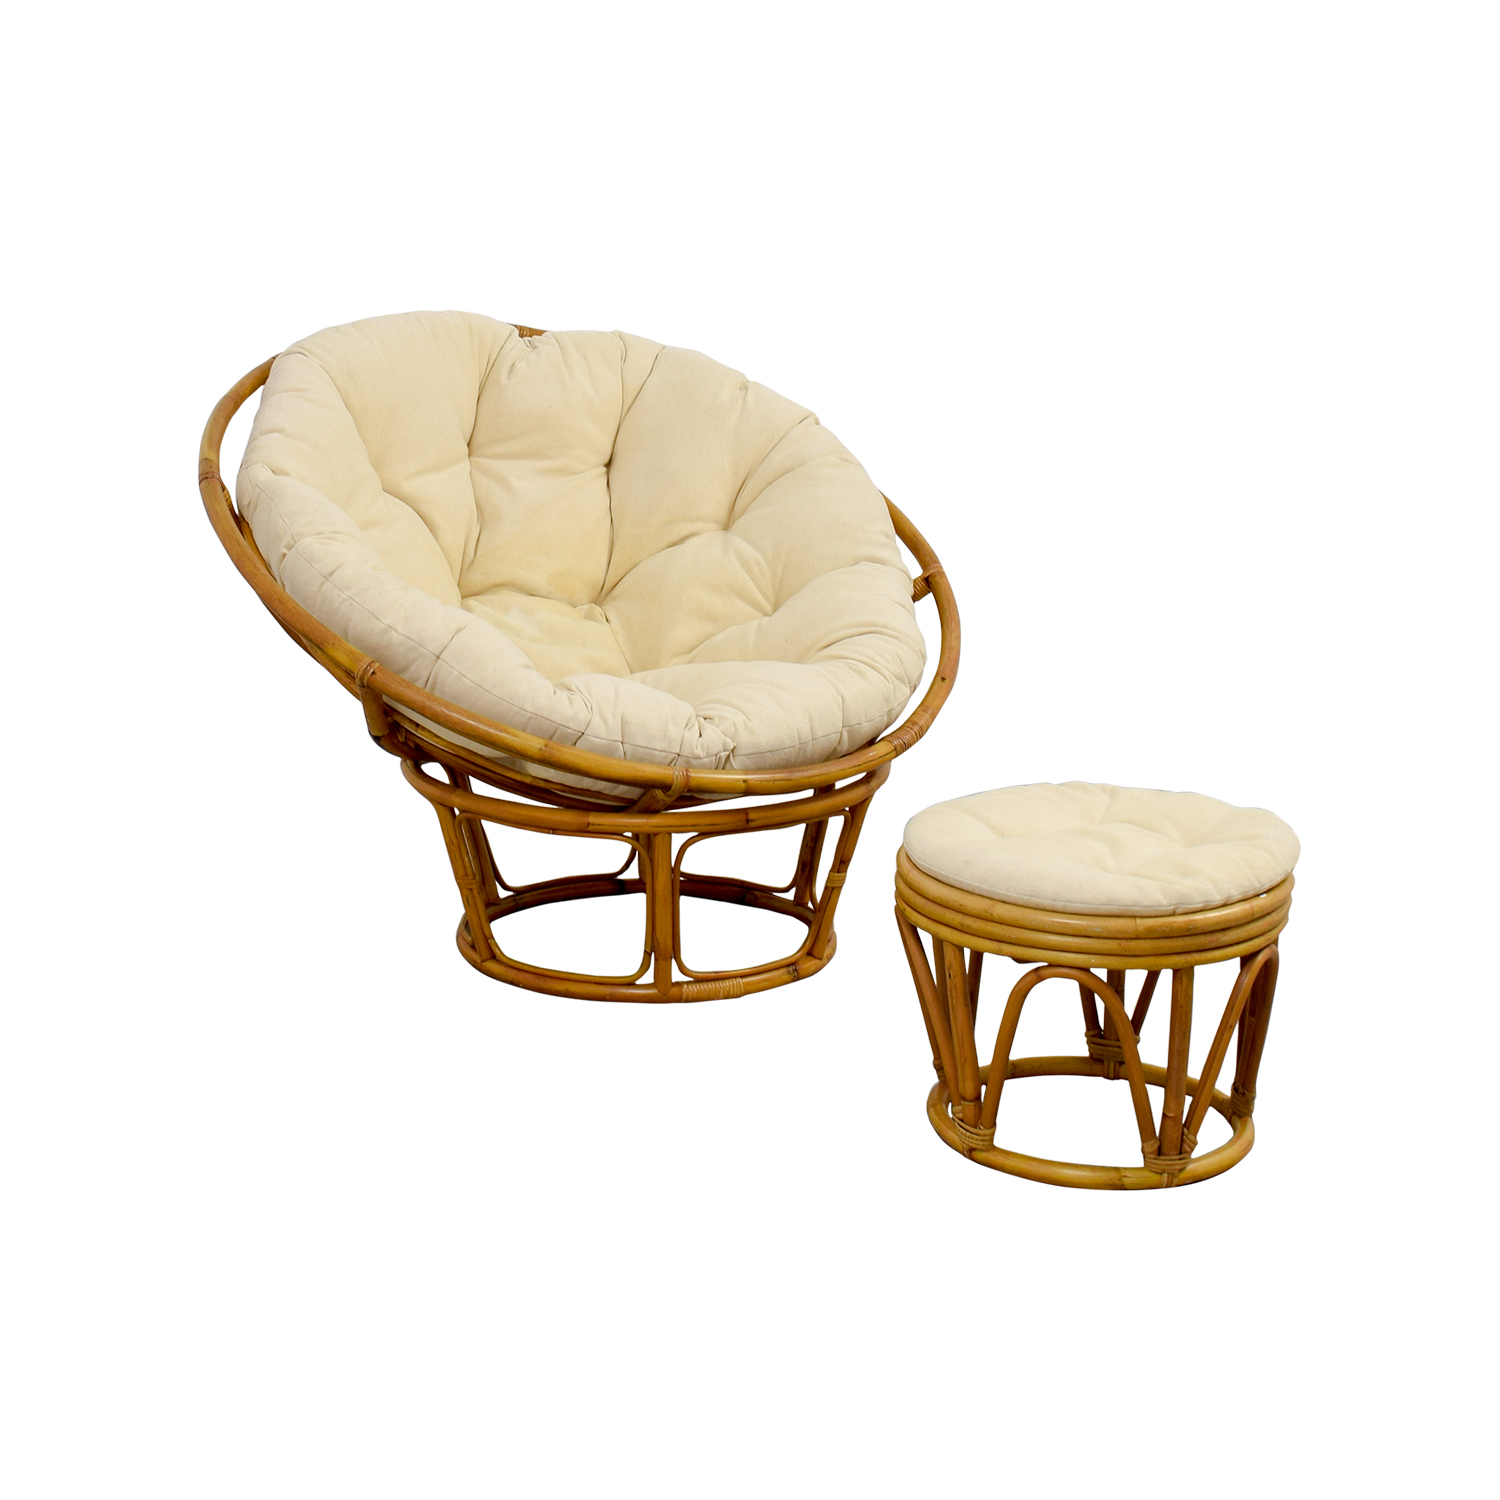 Pier 1 Swing Chair 68 Off Pier 1 Pier 1 Papasan Chair With Footstool Chairs